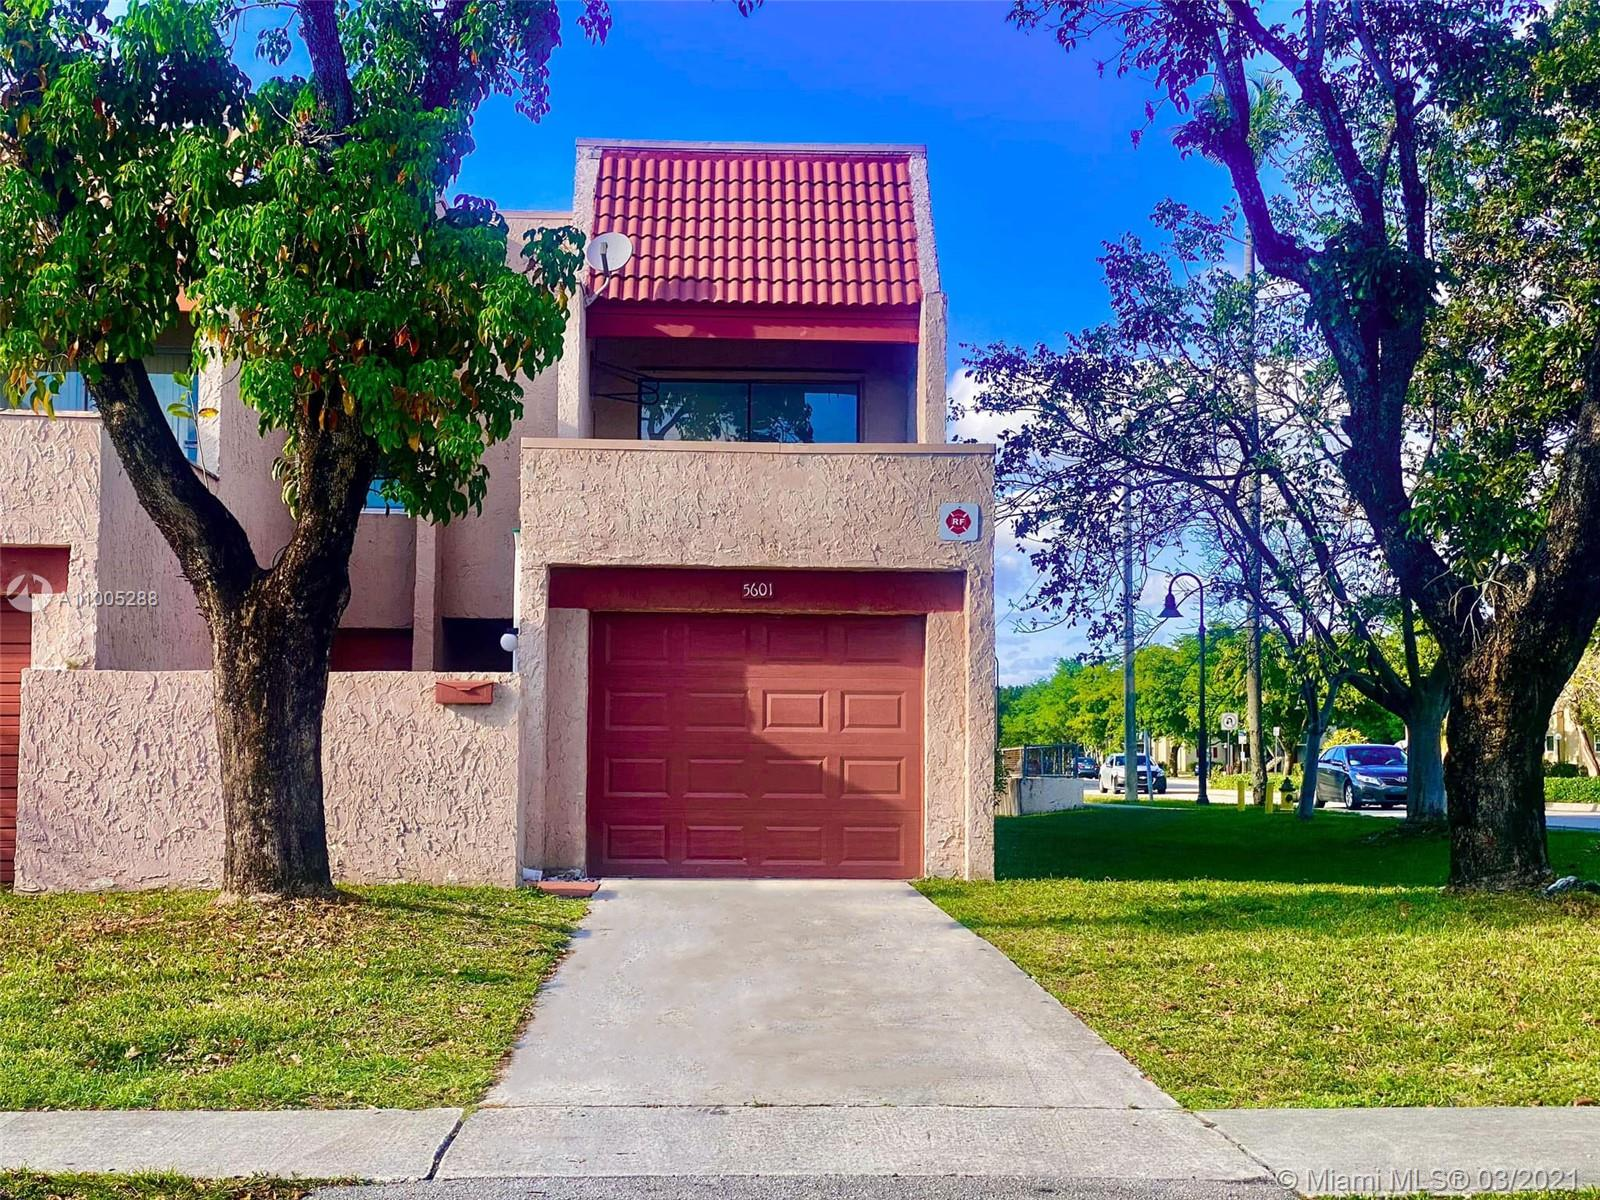 Newly Remodeled Bright and Spacious Home. 3 bedroom + 2.5 bathroom, 1800 Sq. Ft townhome in a very unique community, ideally located in Lauderhill FL.  Sprawling private grounds offer a homely feeling with a community pool and play ground for the kids to play.  Bright, quiet 3 bedroom, 2 full bathroom and 1 half bathroom townhome, corner unit with courtyard and long walk way. Remolded kitchen with granite counter tops and new appliances, tile floors throughout, walls freshly paint, new doors, new garage, dual sinks in master bath with both tub and shower. Brand new roof over the garage. 2-4 cars can park out front. $255.00 HOA fee. Don't forget the lake view in the back.